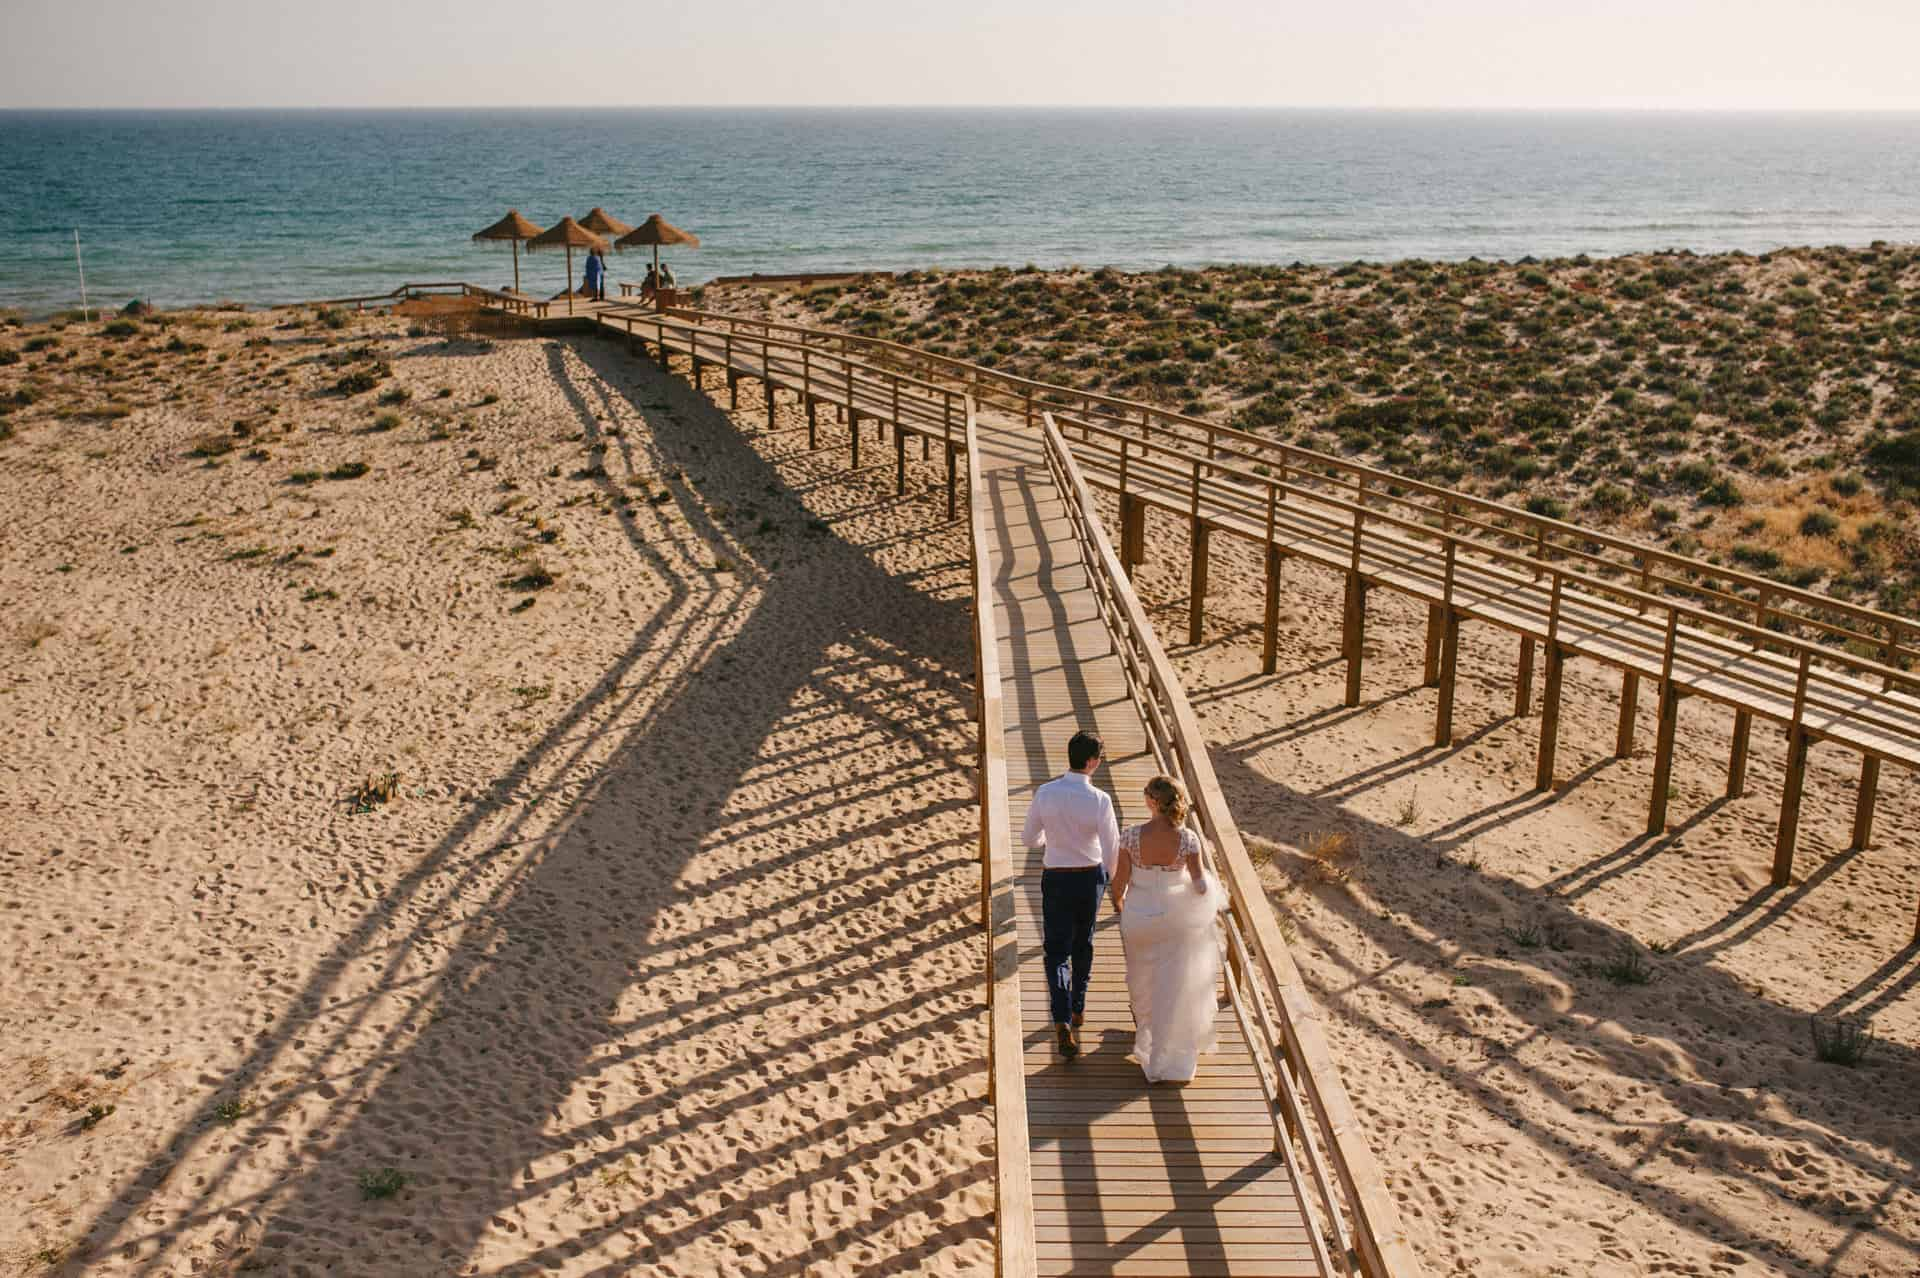 Best wedding images of the year (075 of 316)